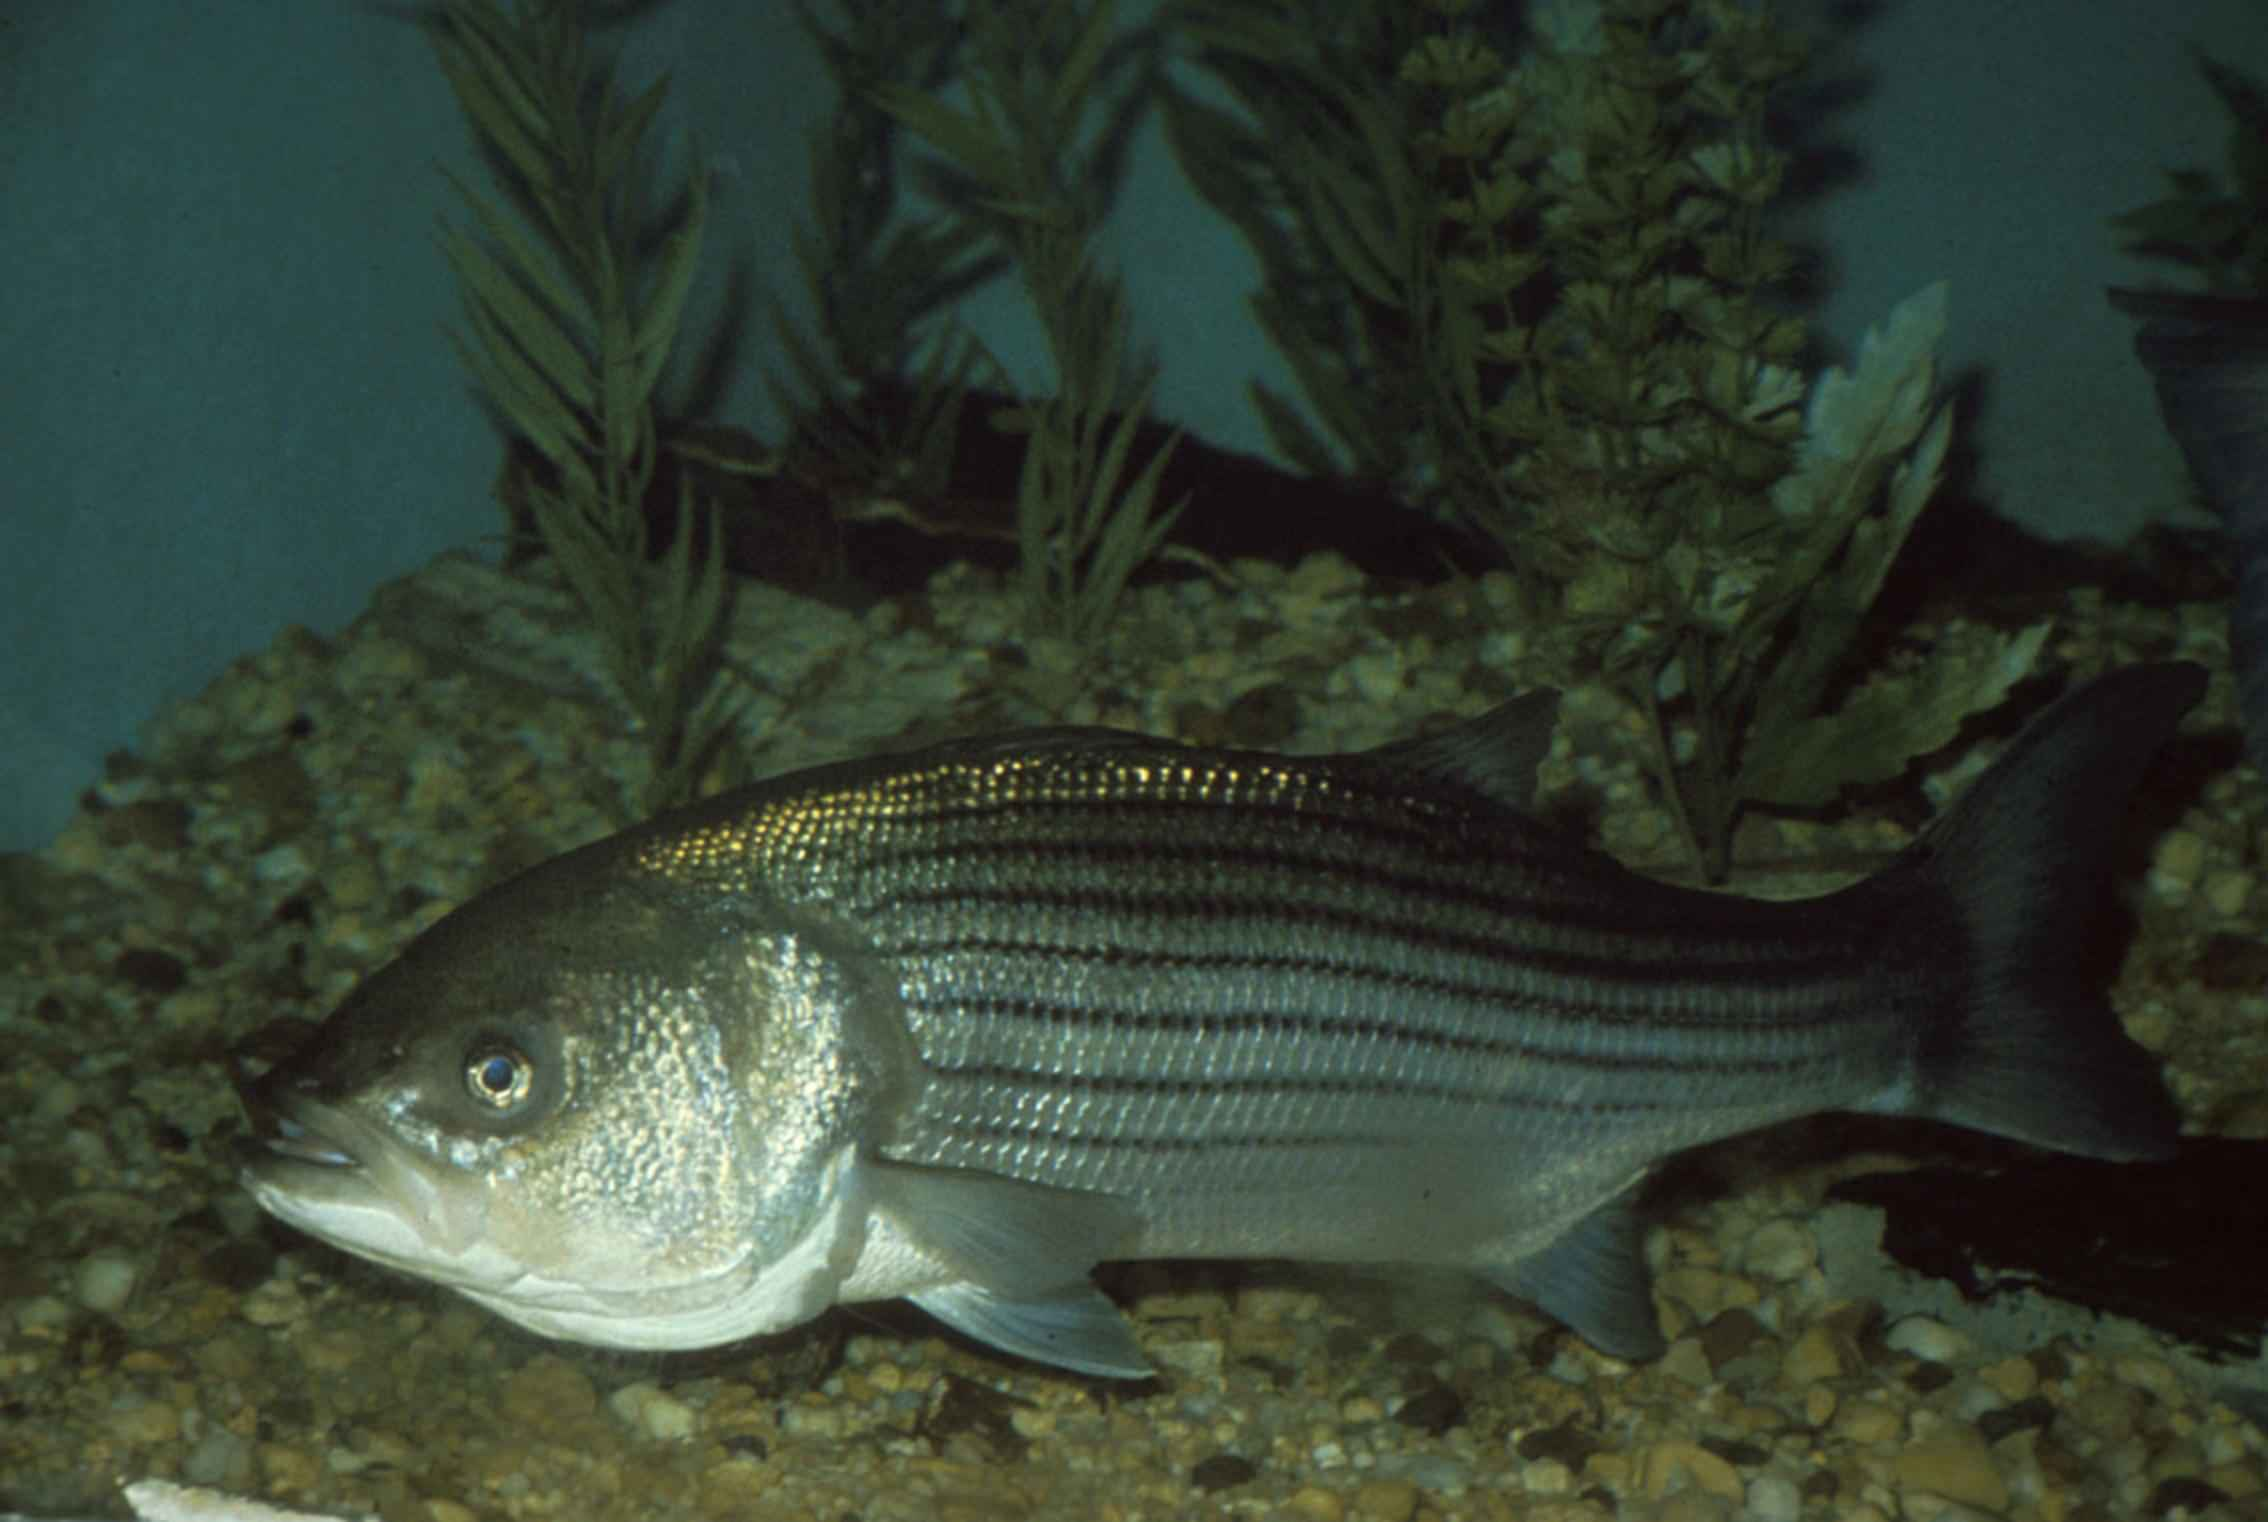 One large striped bass is in a large tank with gravel and sea grasses below and behind it